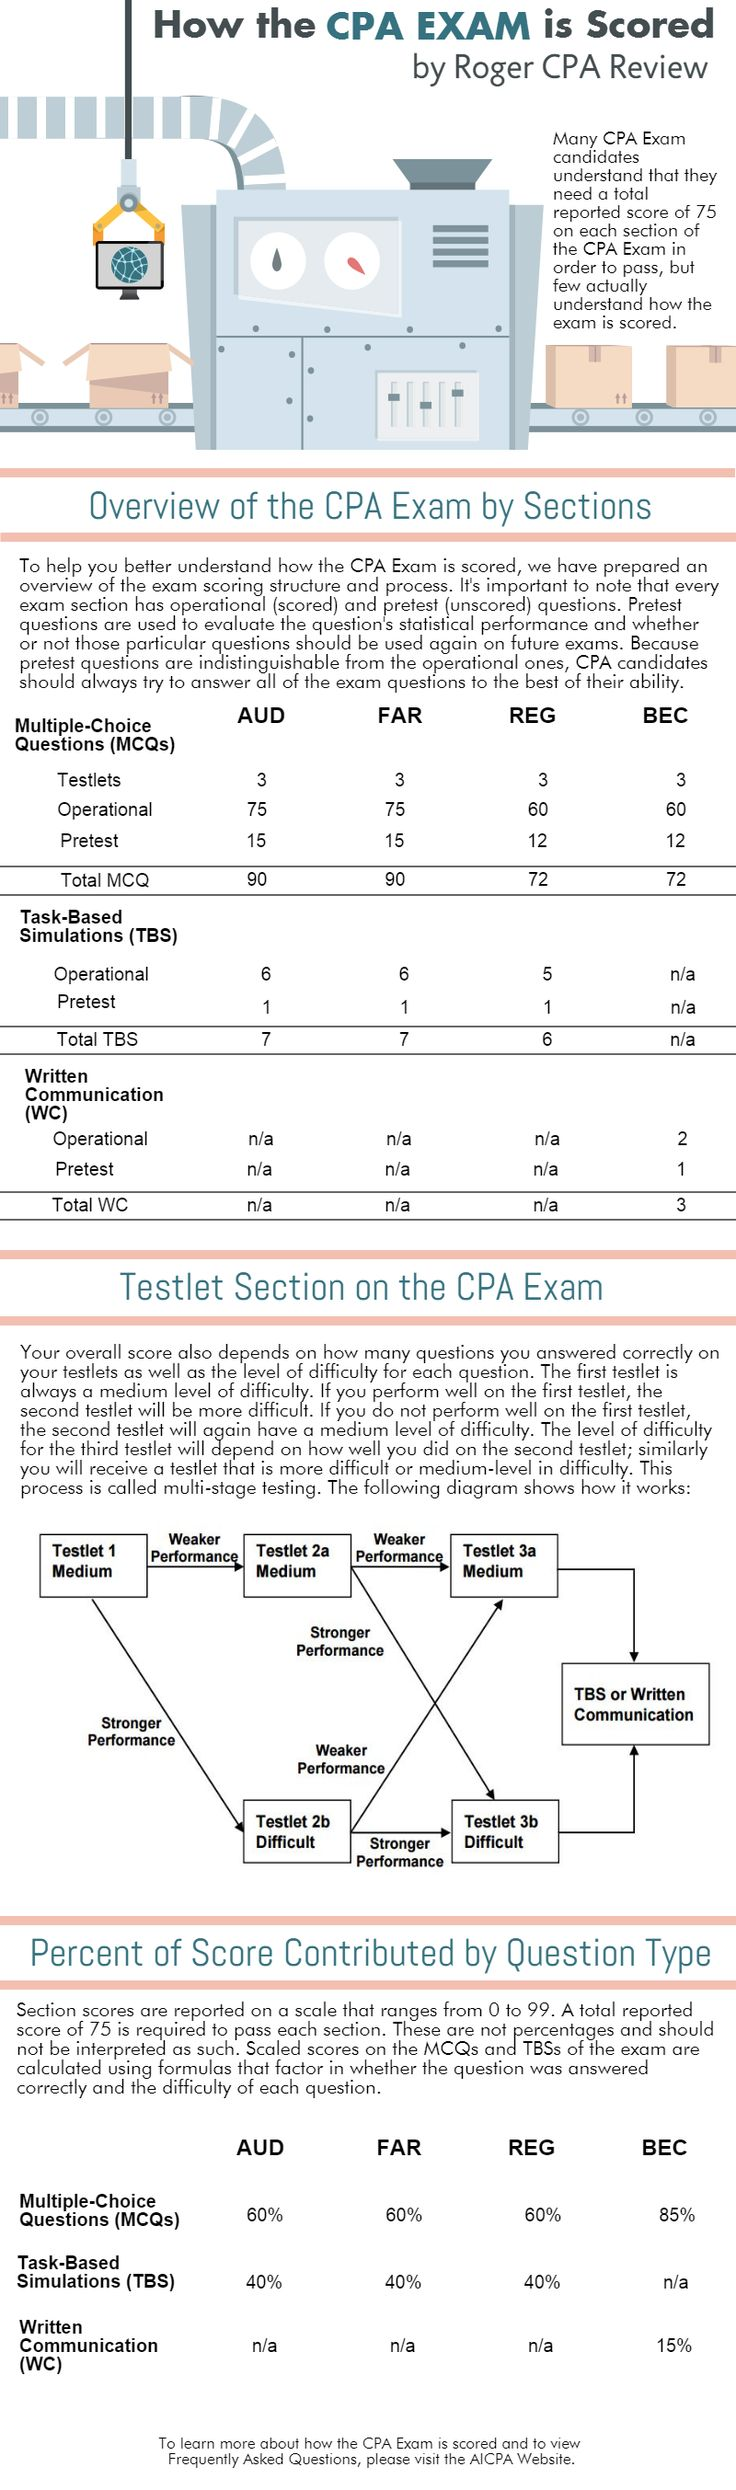 Click on the infographic for detailed information about how the CPA Exam is scored.